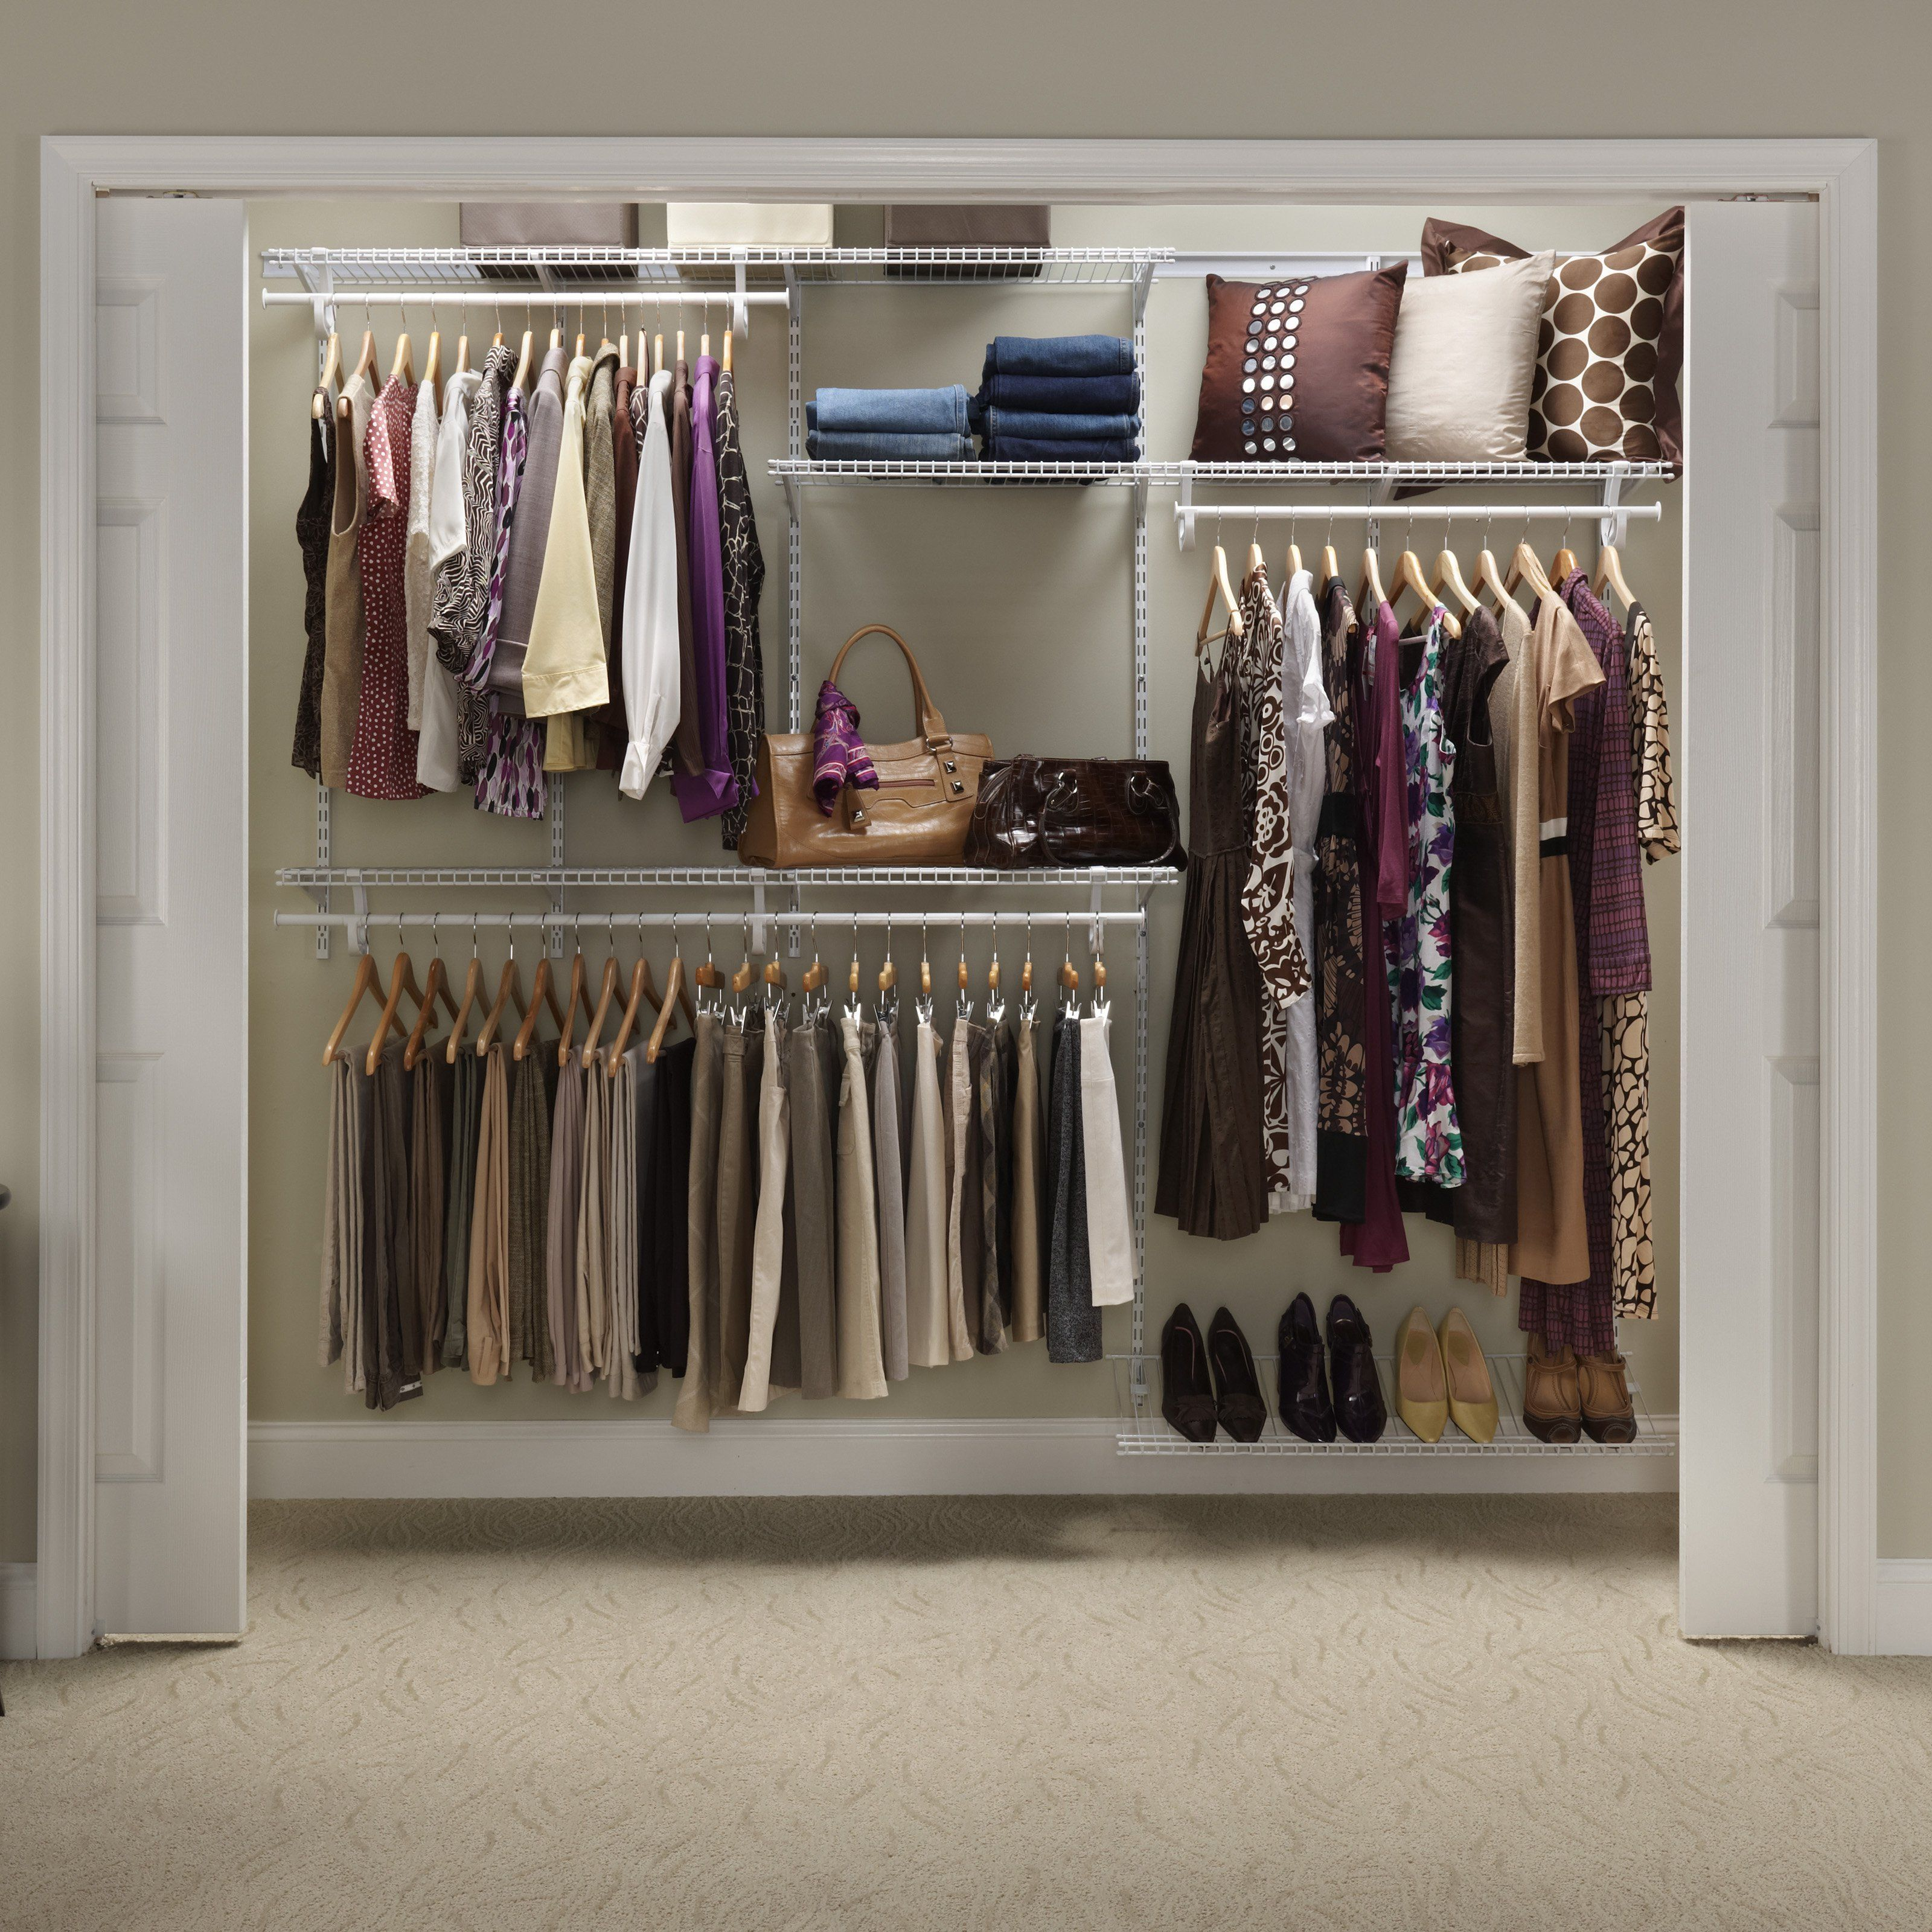 Closet Organization Made Simplethank You Again For Checking Out My